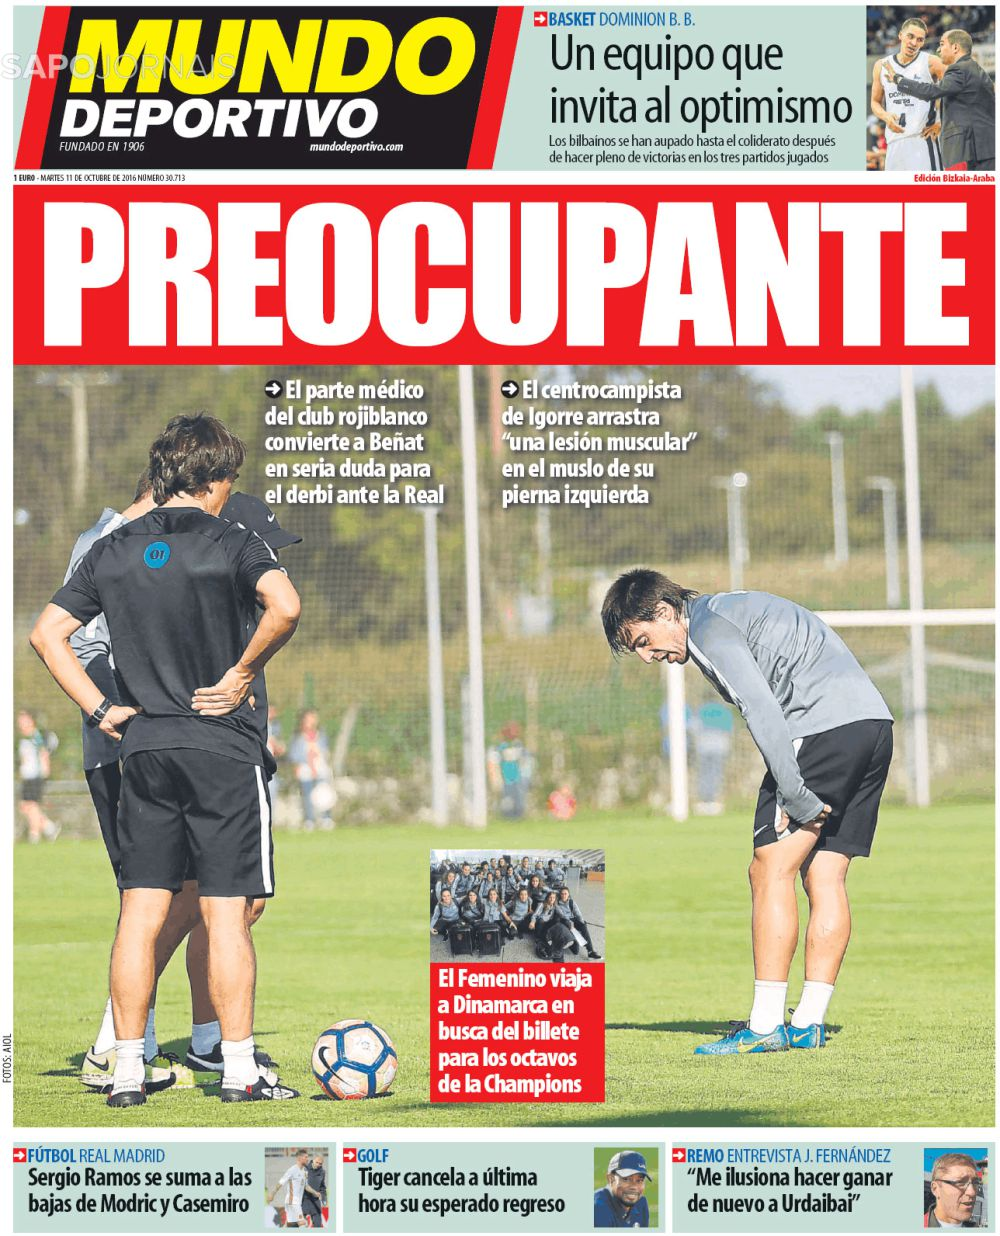 Capa do Jornal Mundo Deportivo - Athletic Club Bilbao